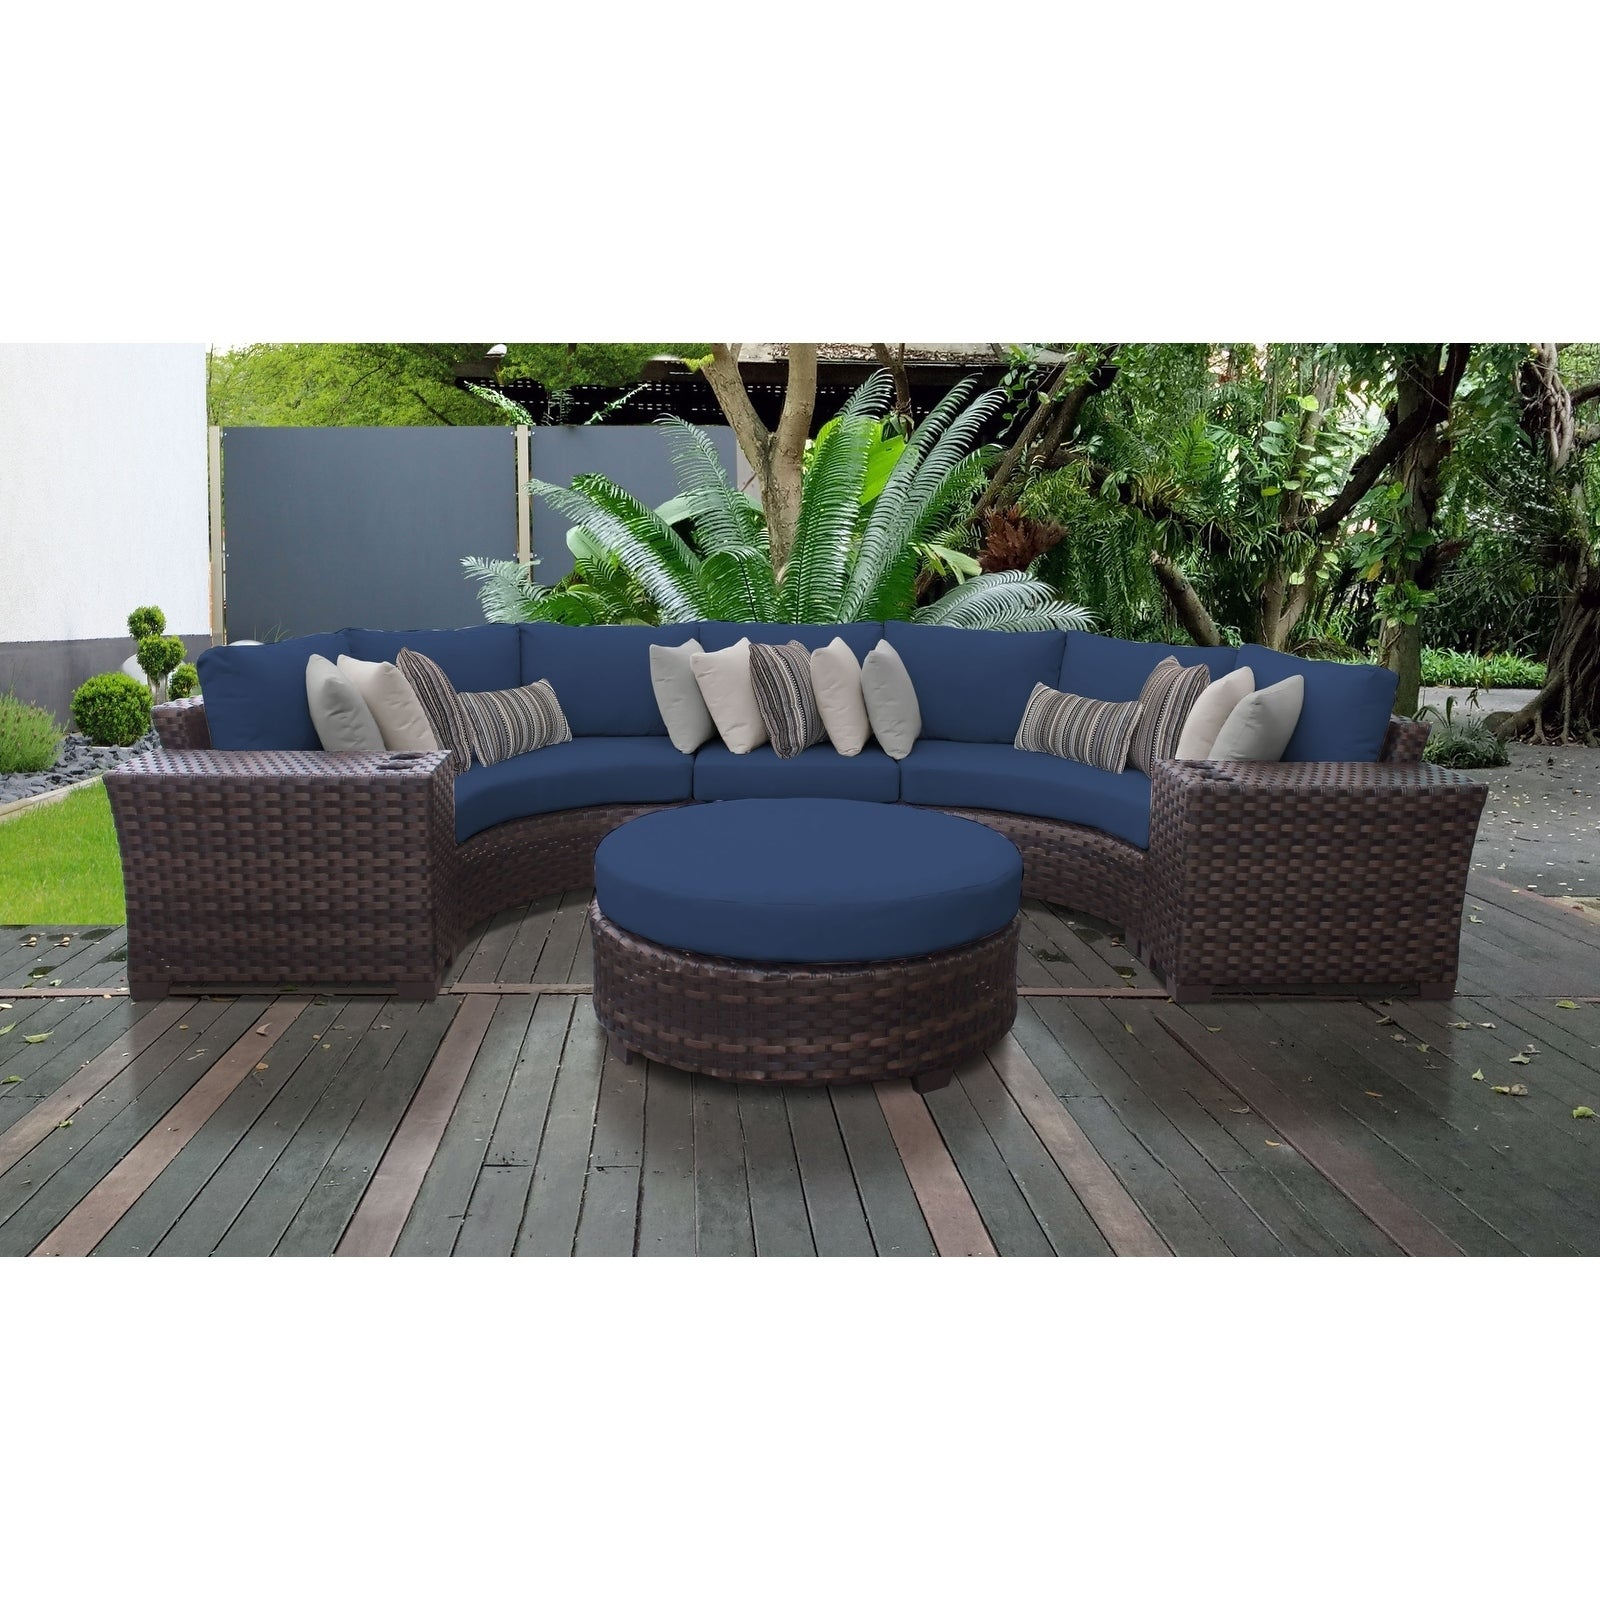 Shop kathy ireland river brook 6 piece outdoor wicker patio furniture set 06c free shipping today overstock 27615229